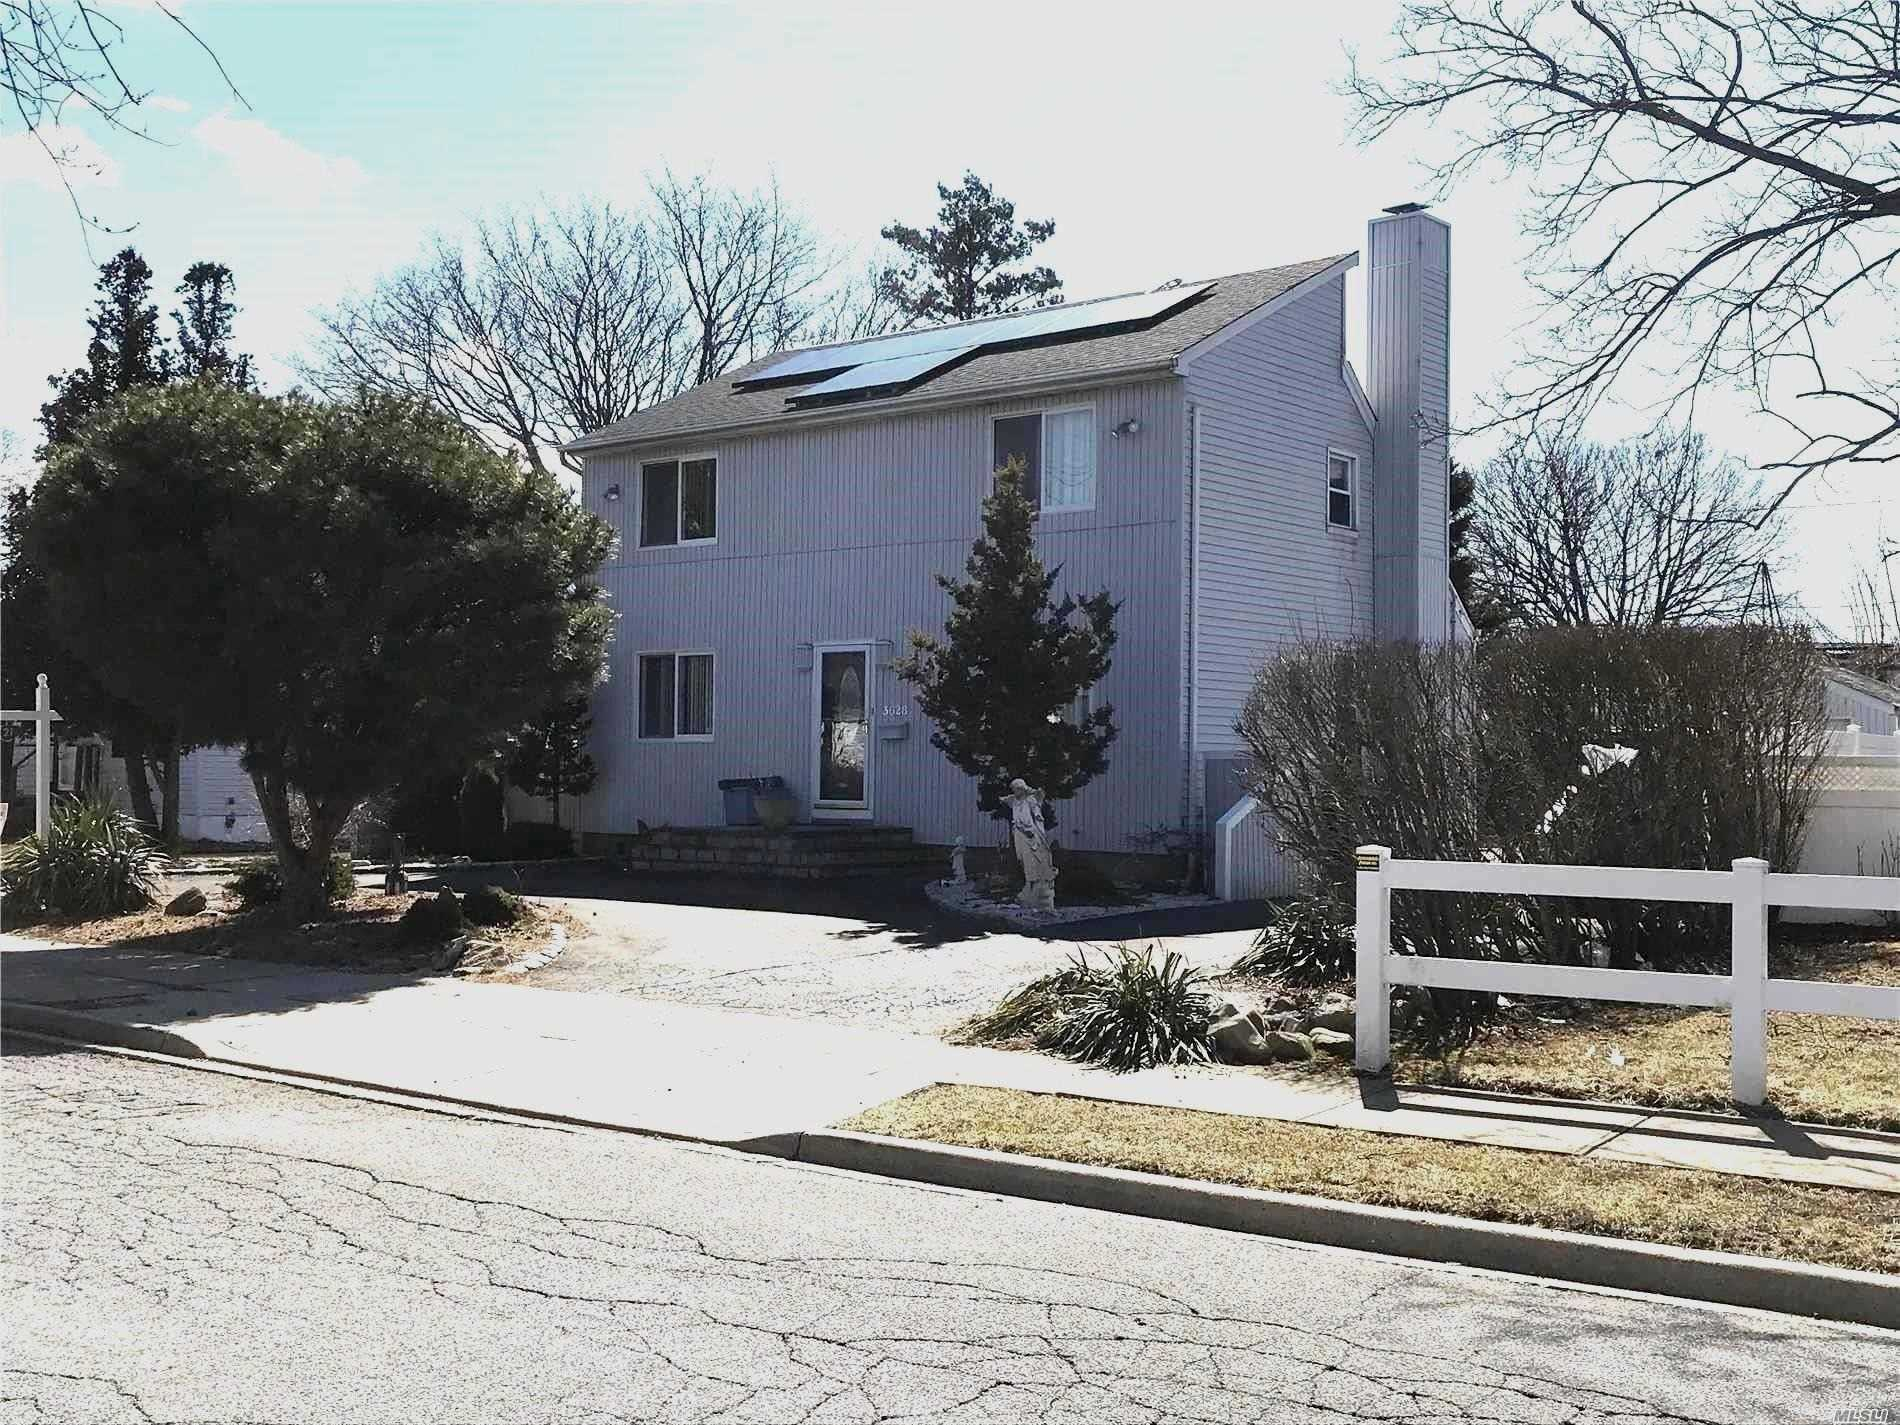 Big House With Big Potential! Miller Cape With Double Dormer, Full Unfinished Basement, Det. 1 1/2 Car Garage. Can Be M/D With Proper Permits. Upstairs Has High Ceilings With Sky Windows, Spacious And Bright. Needs Tlc. Island Trees Sd.